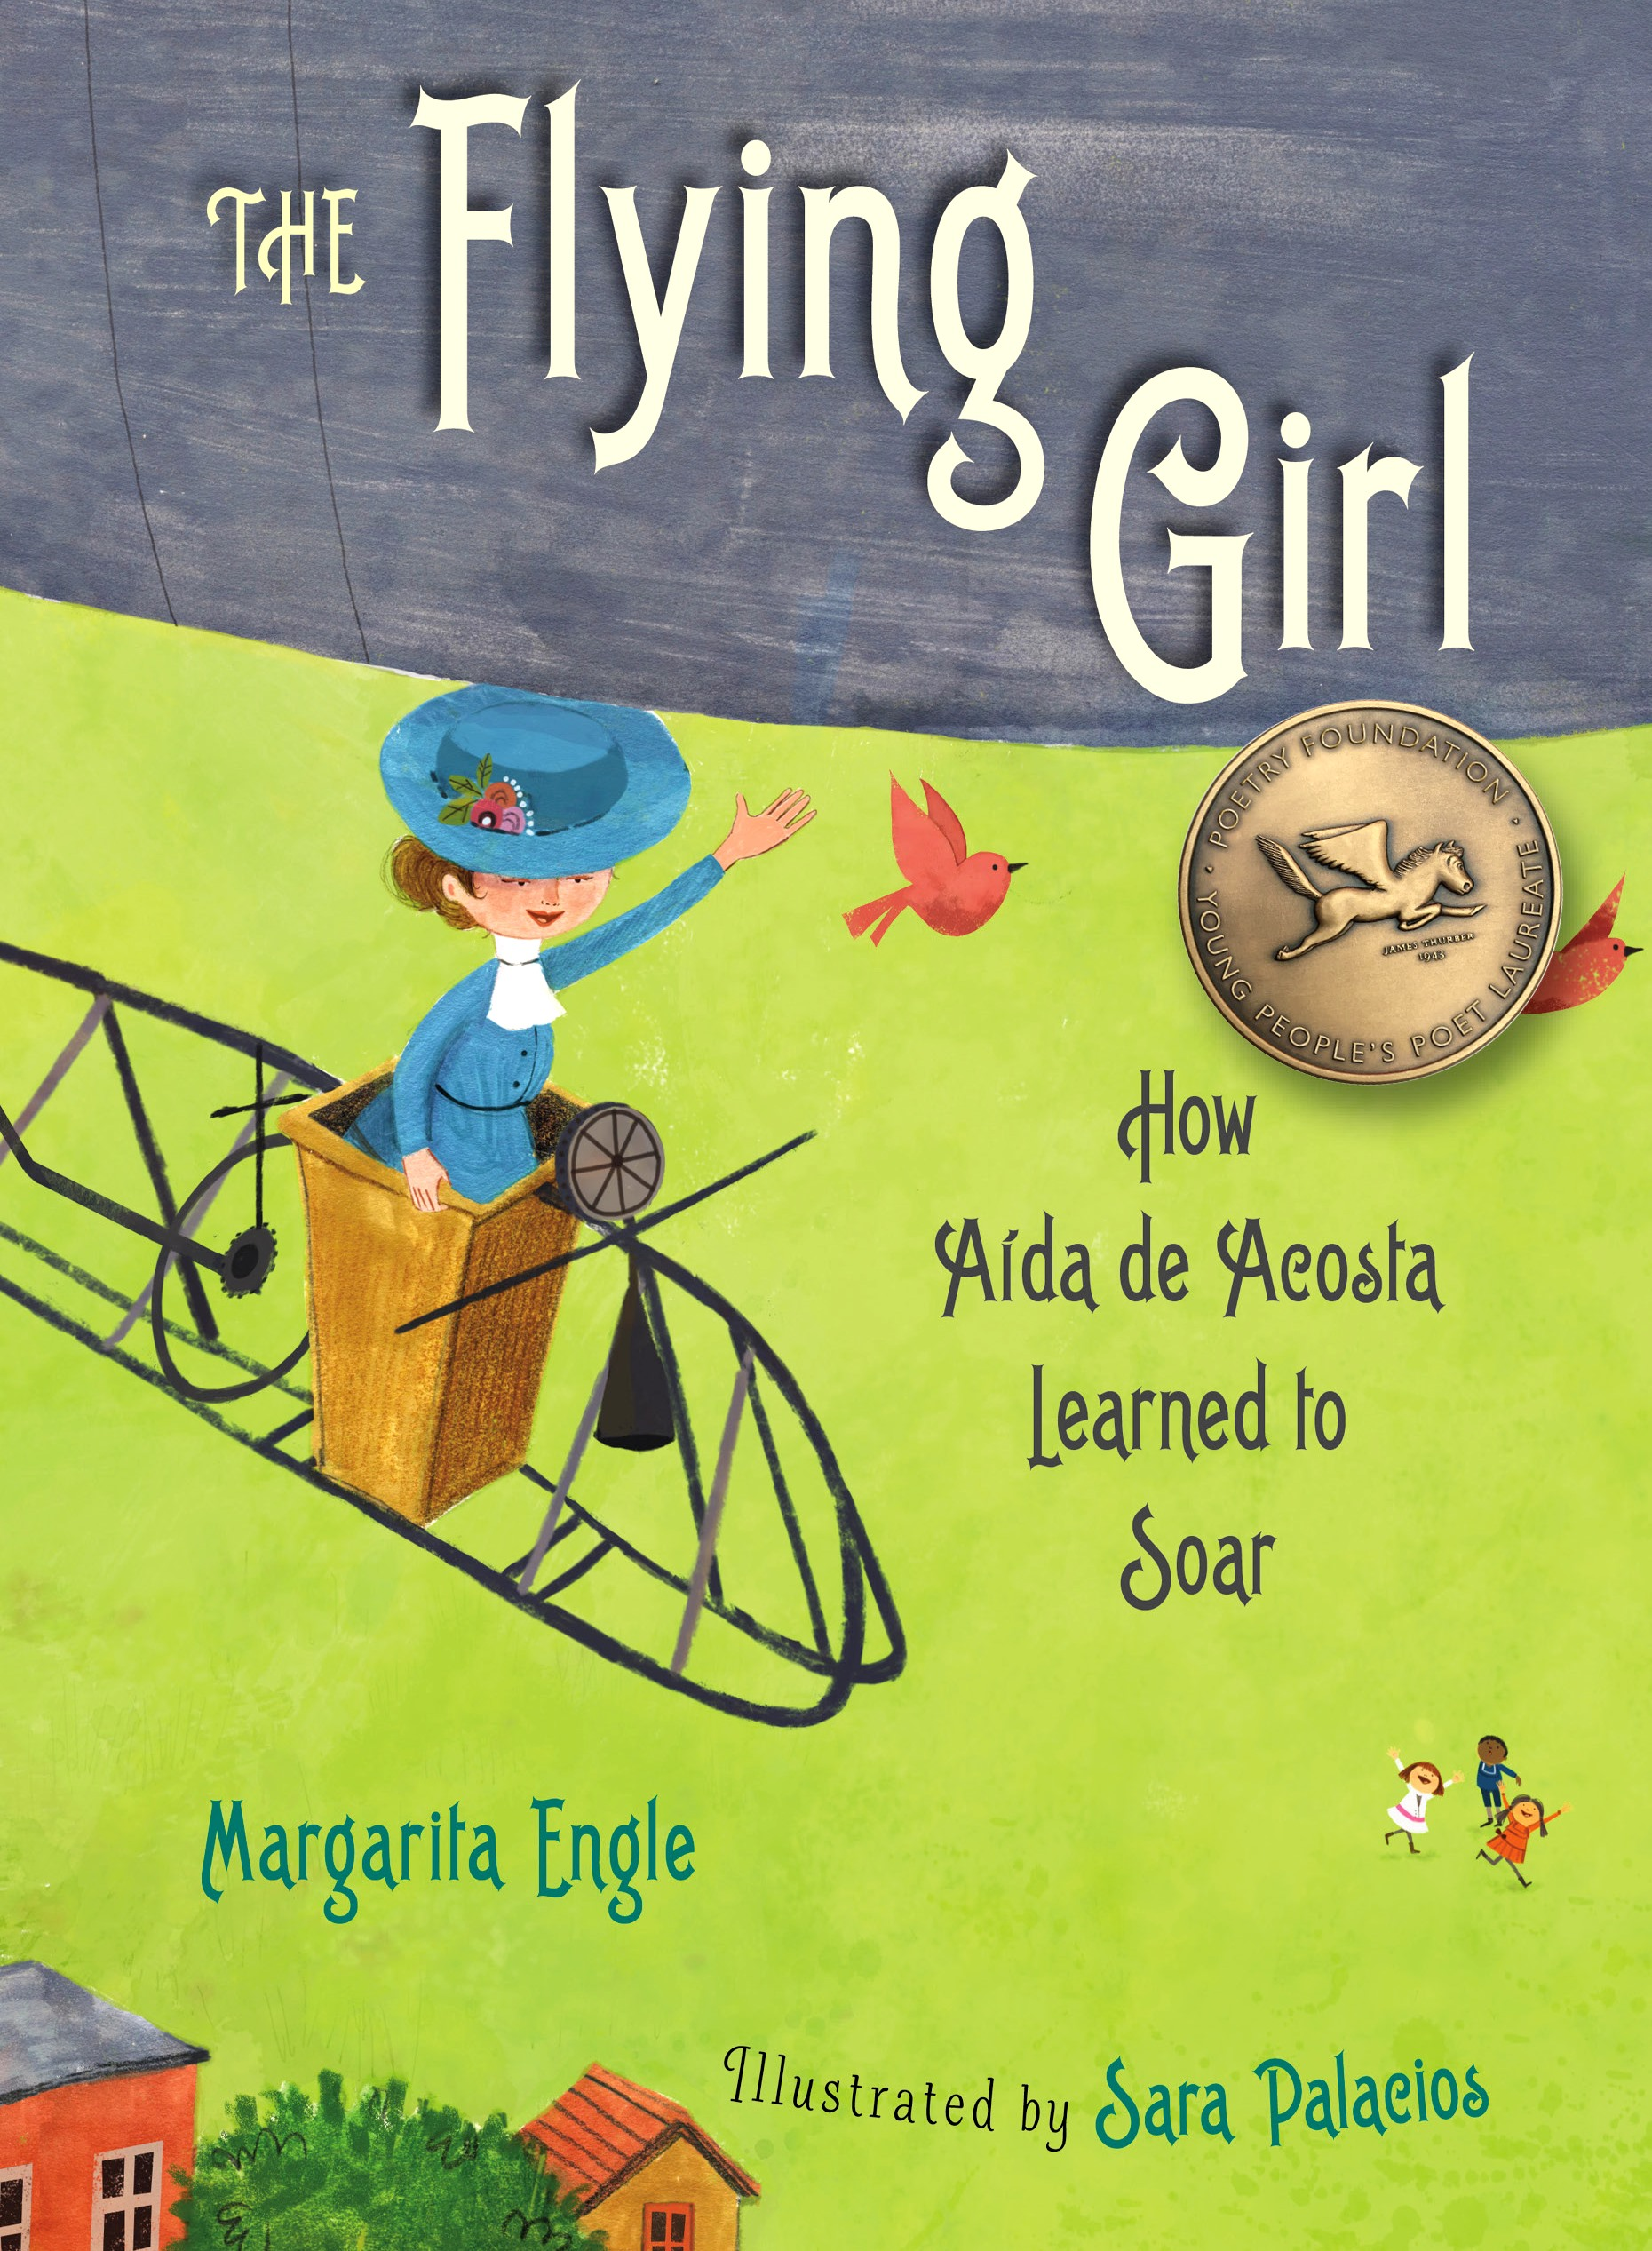 Classroom activities to support teachers and Common Core State Standards  based on Margarita Engle's books.